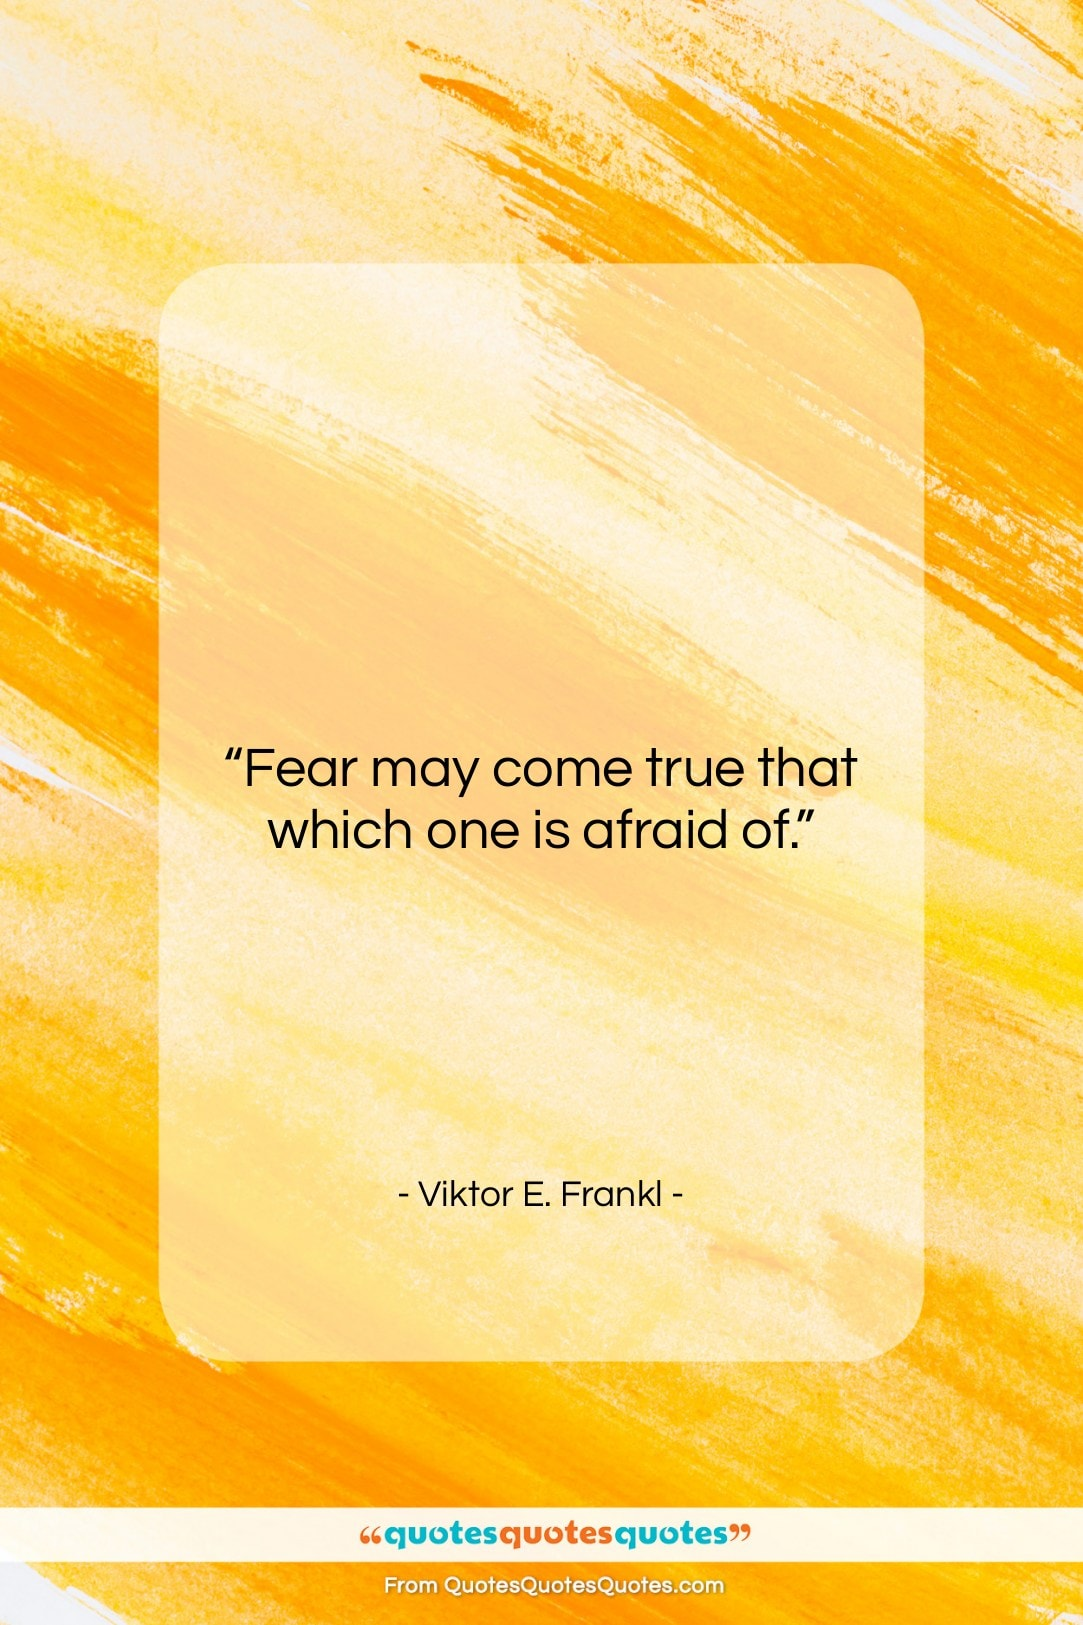 """Viktor E. Frankl quote: """"Fear may come true that which one…""""- at QuotesQuotesQuotes.com"""